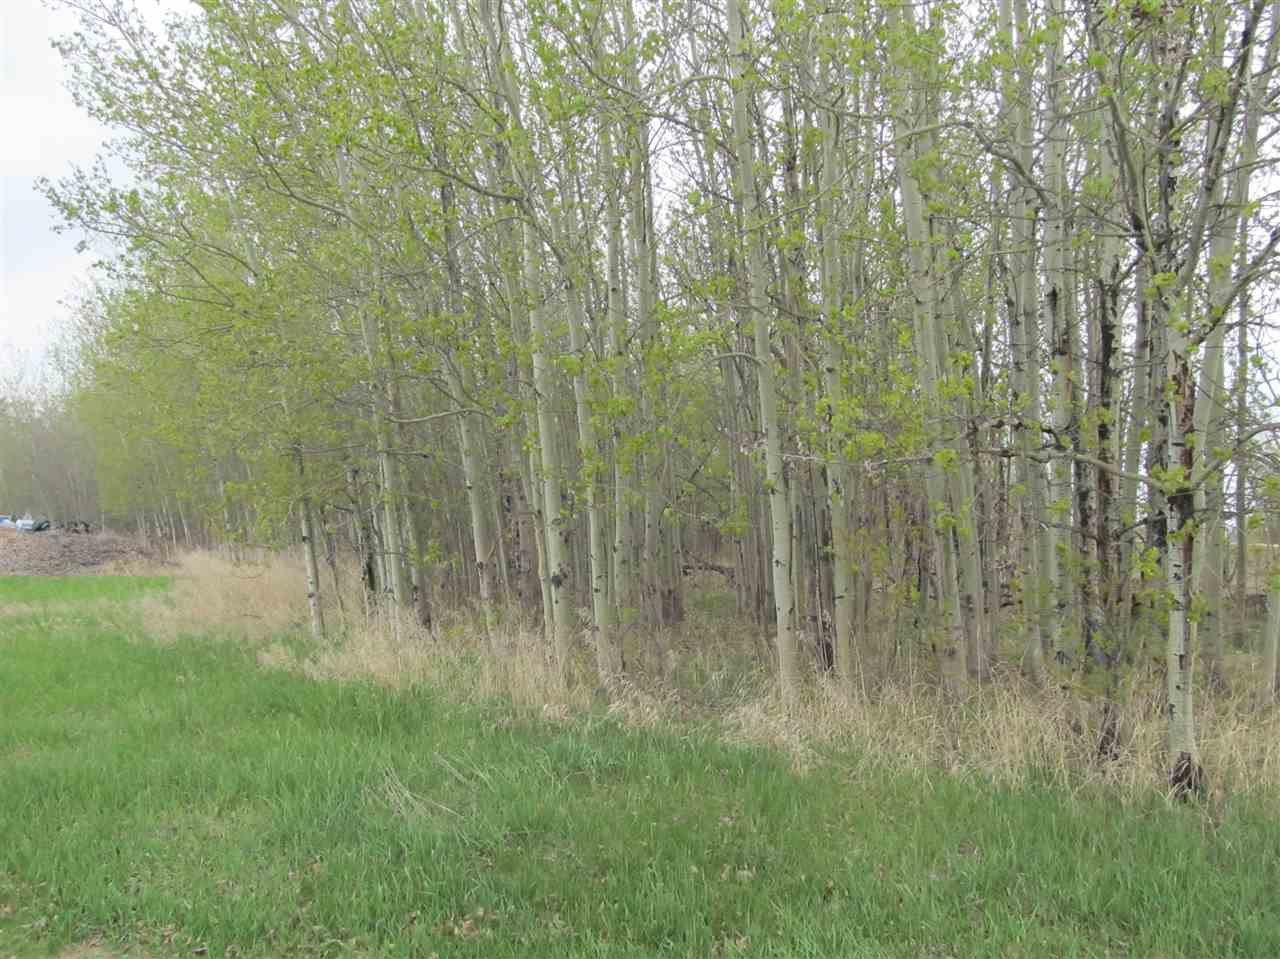 Photo 4: 19 22515 Twp Rd 575A: Rural Sturgeon County Rural Land/Vacant Lot for sale : MLS(r) # E4061245